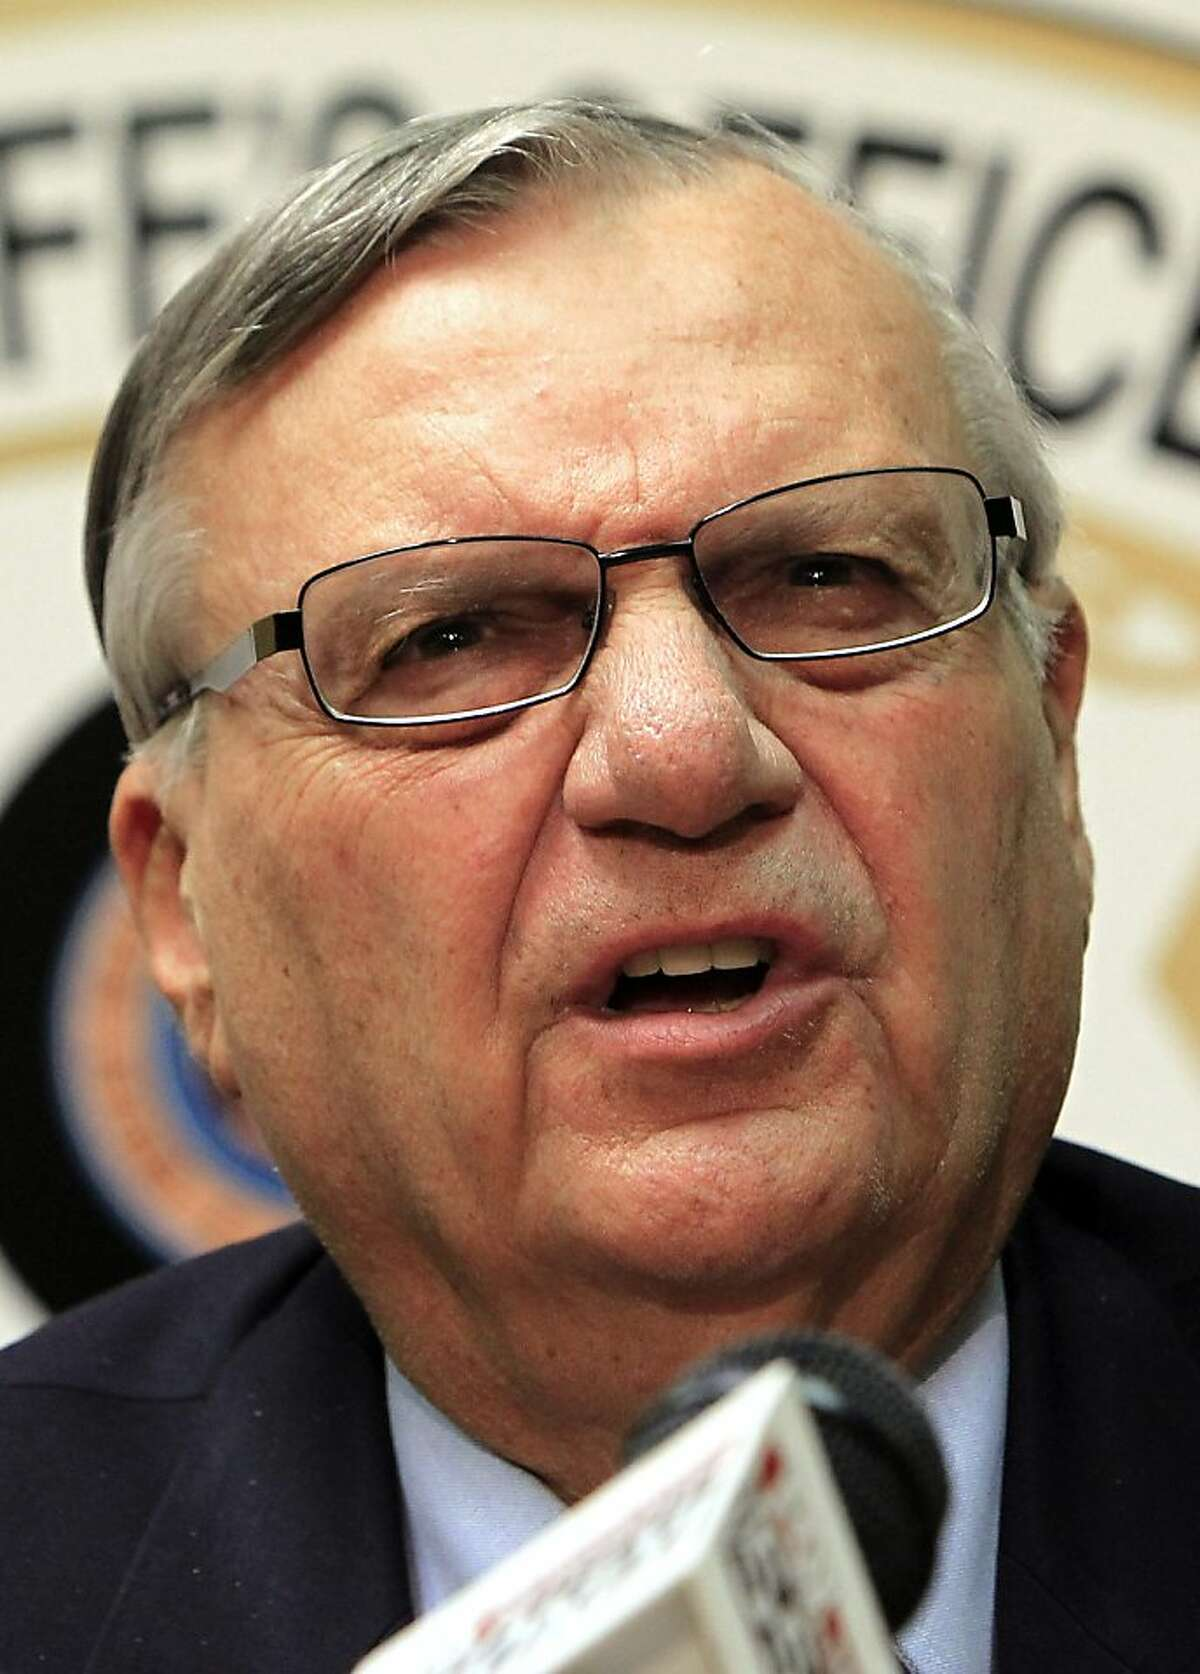 FILE - In a Monday, Dec. 5, 2011 file photo, Maricopa County Sheriff Joe Arpaio discusses the latest in the document release on his office's handling of many sexual assault cases over the years in El Mirage, Ariz., during a news conference, in Phoenix. Federal authorities plan to announce their findings Thursday, Dec. 15, 2011 in a civil rights investigation of Arpaio, who has been accused of using discriminatory tactics in its signature immigration patrols. (AP Photo/Ross D. Franklin, File)